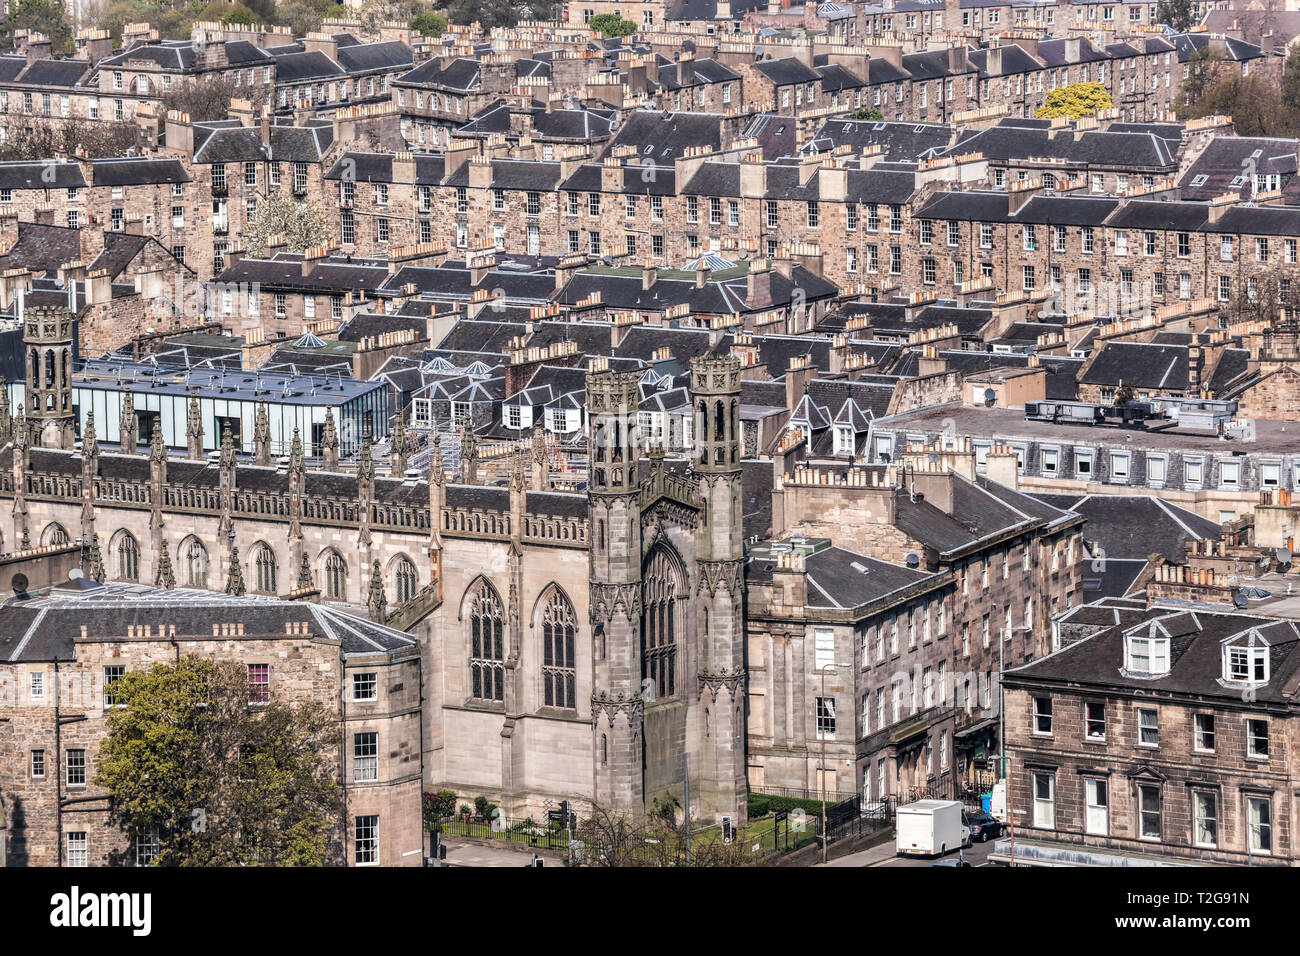 View of Edinburg city with old houses in Scotland - Stock Image